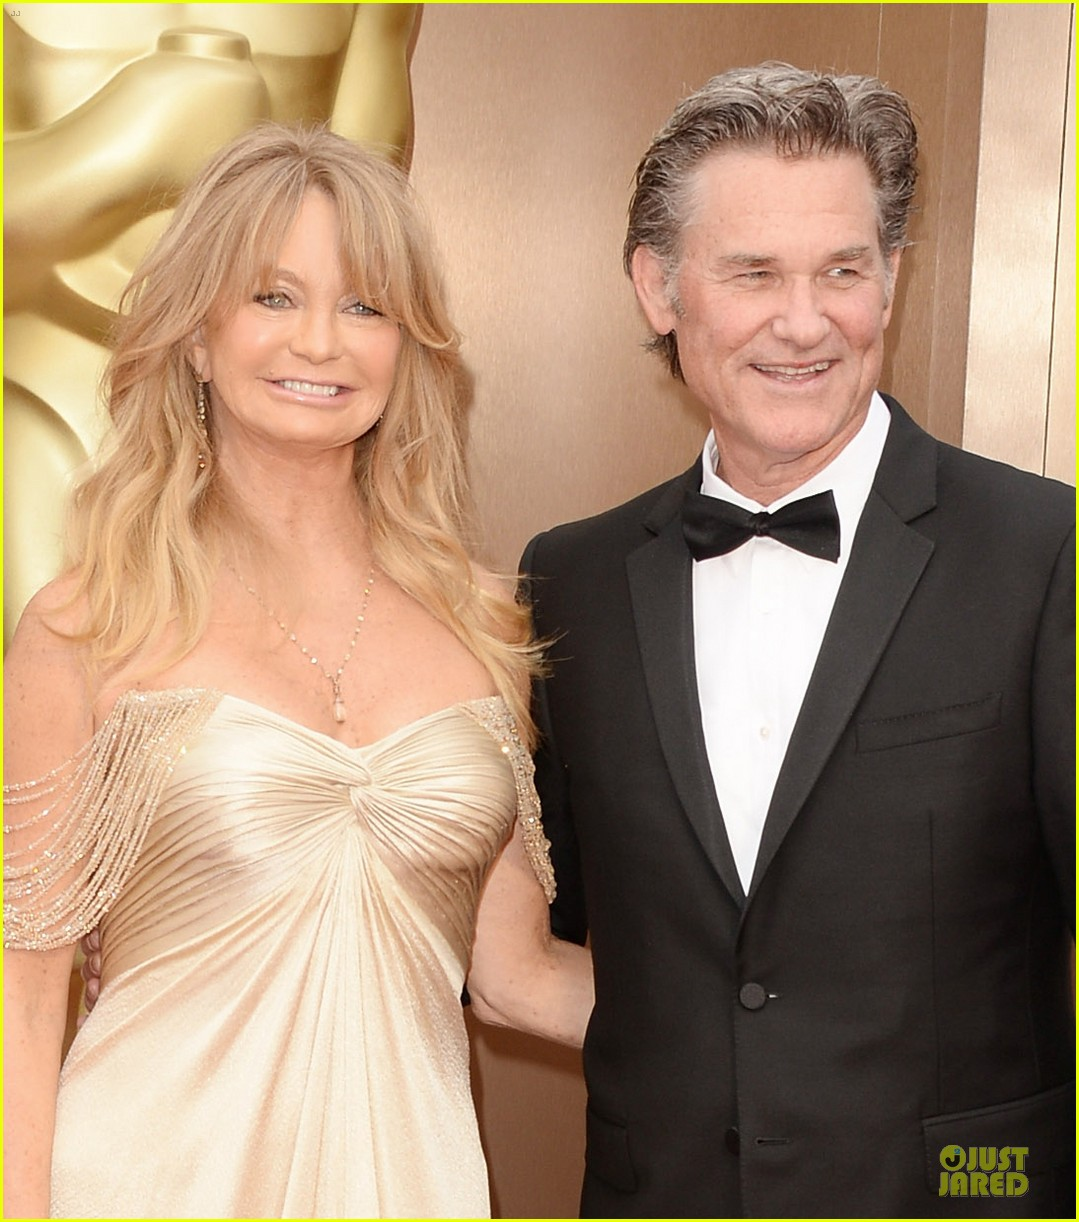 presenter goldie hawn golden goddess on oscars 2014 red carpet with kurt russell 043064062